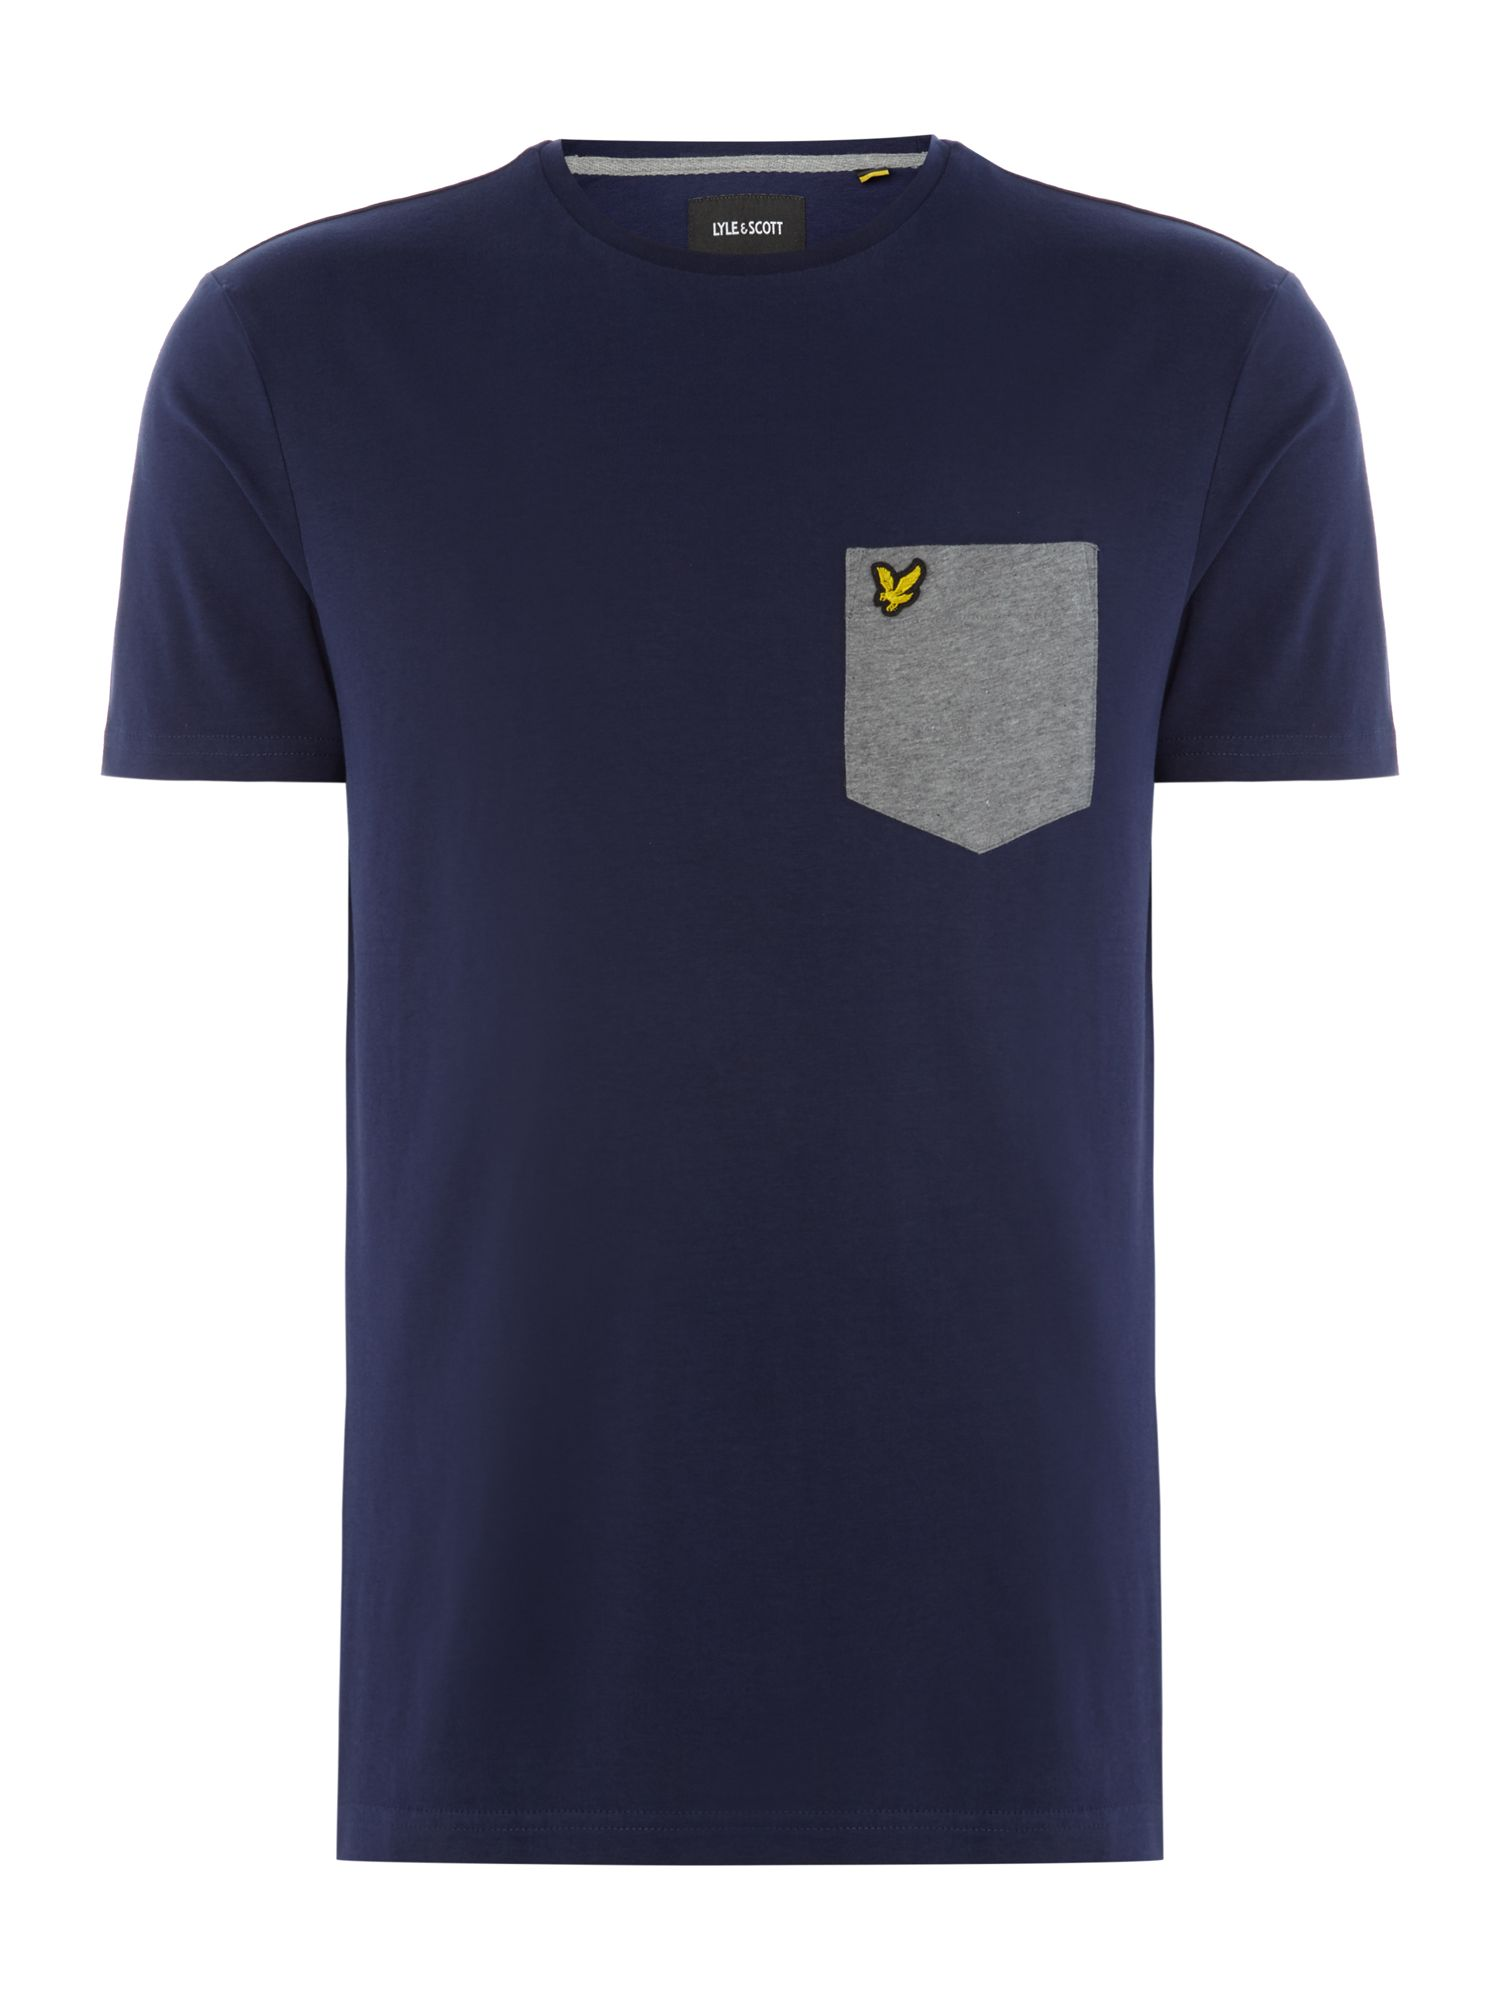 Men's Lyle and Scott Contrast pocket t-tshirt, French Blue